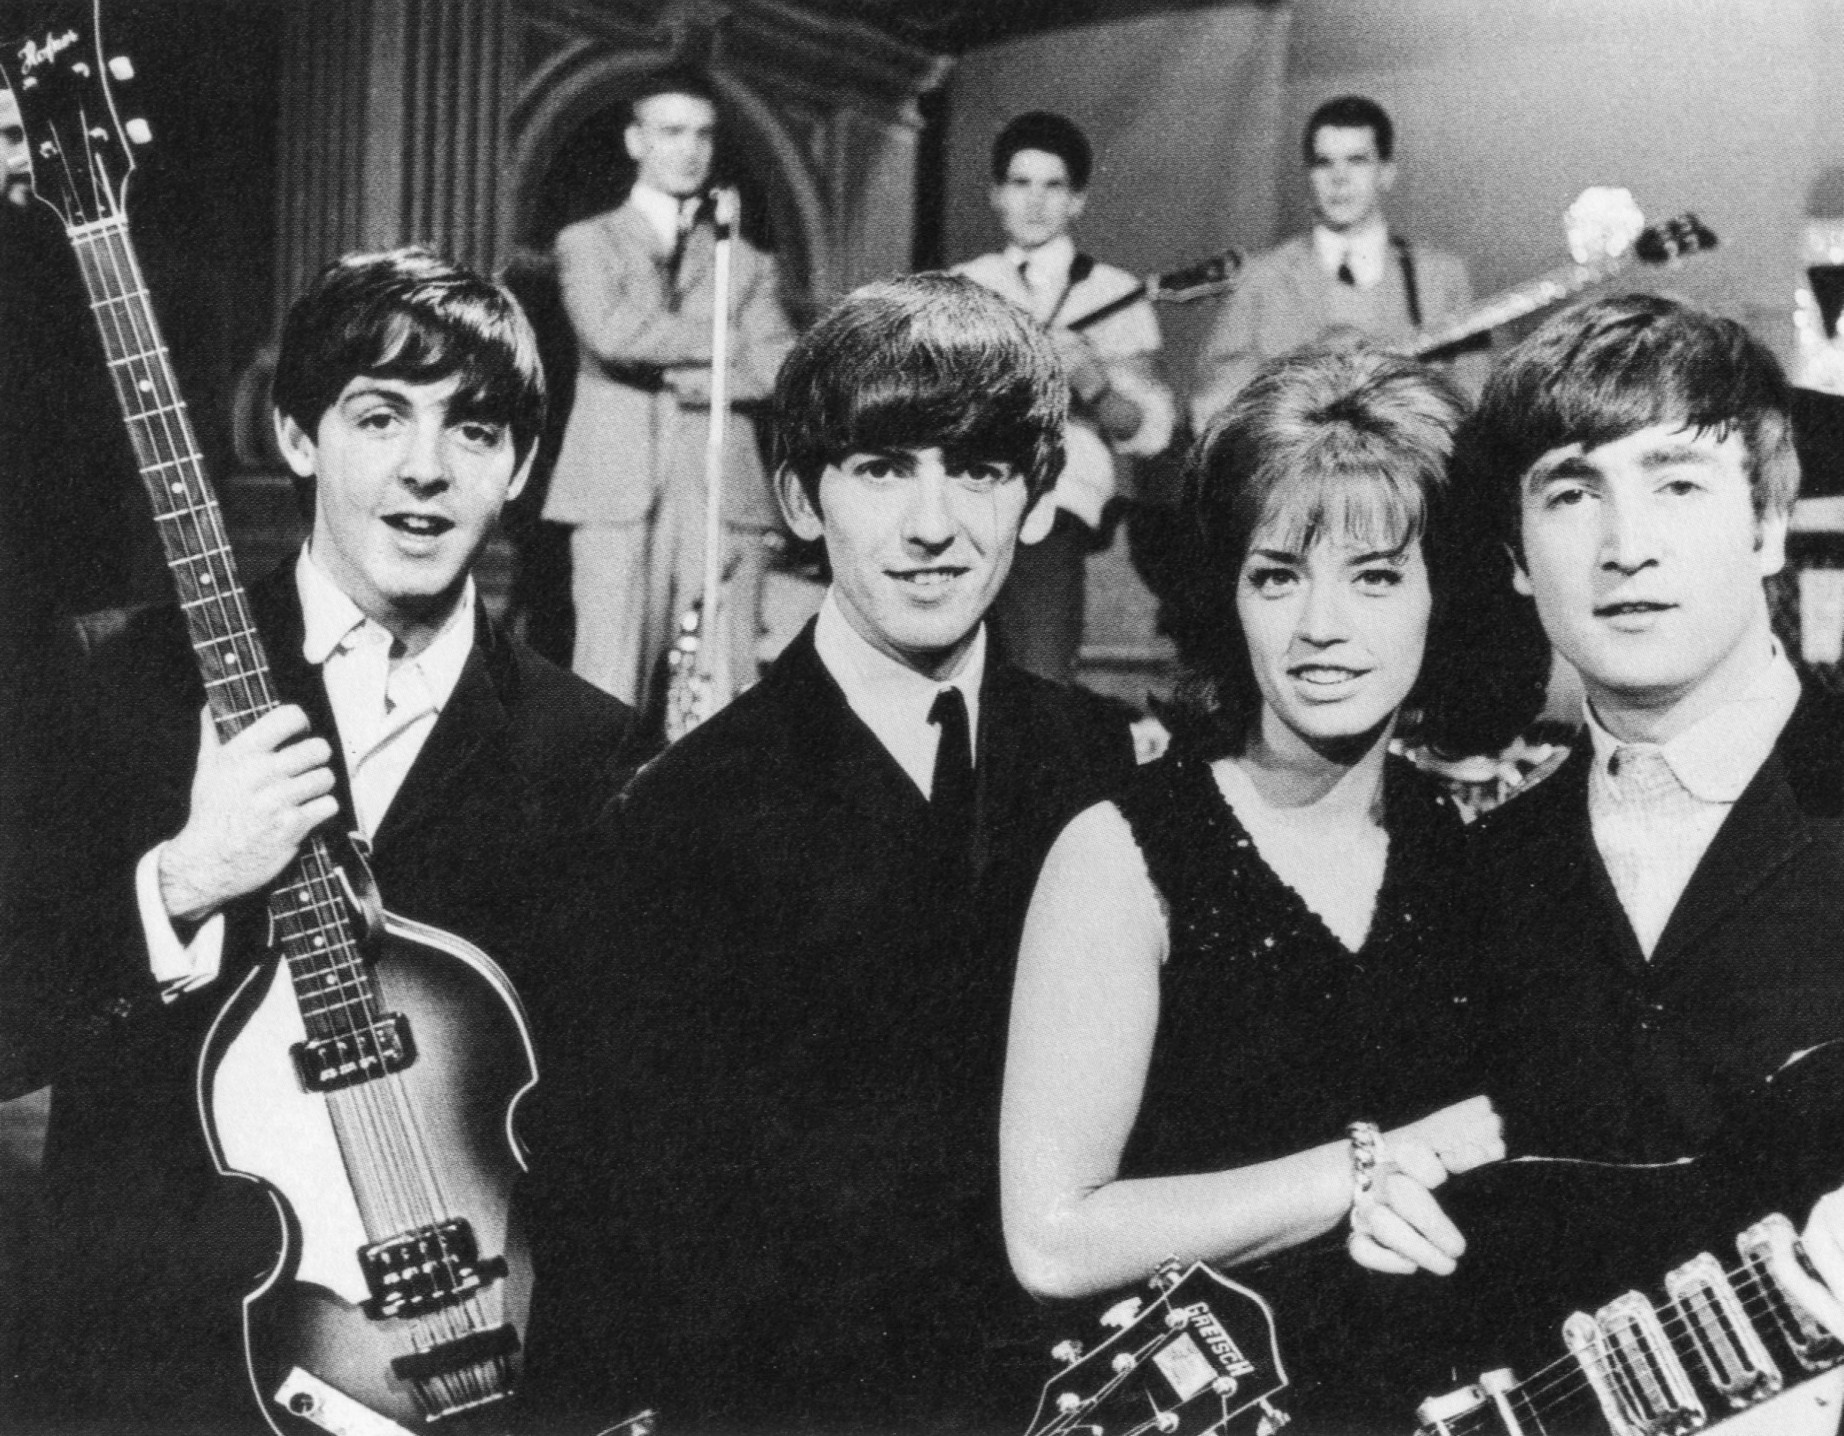 Lill-Babs med The Beatles 1963